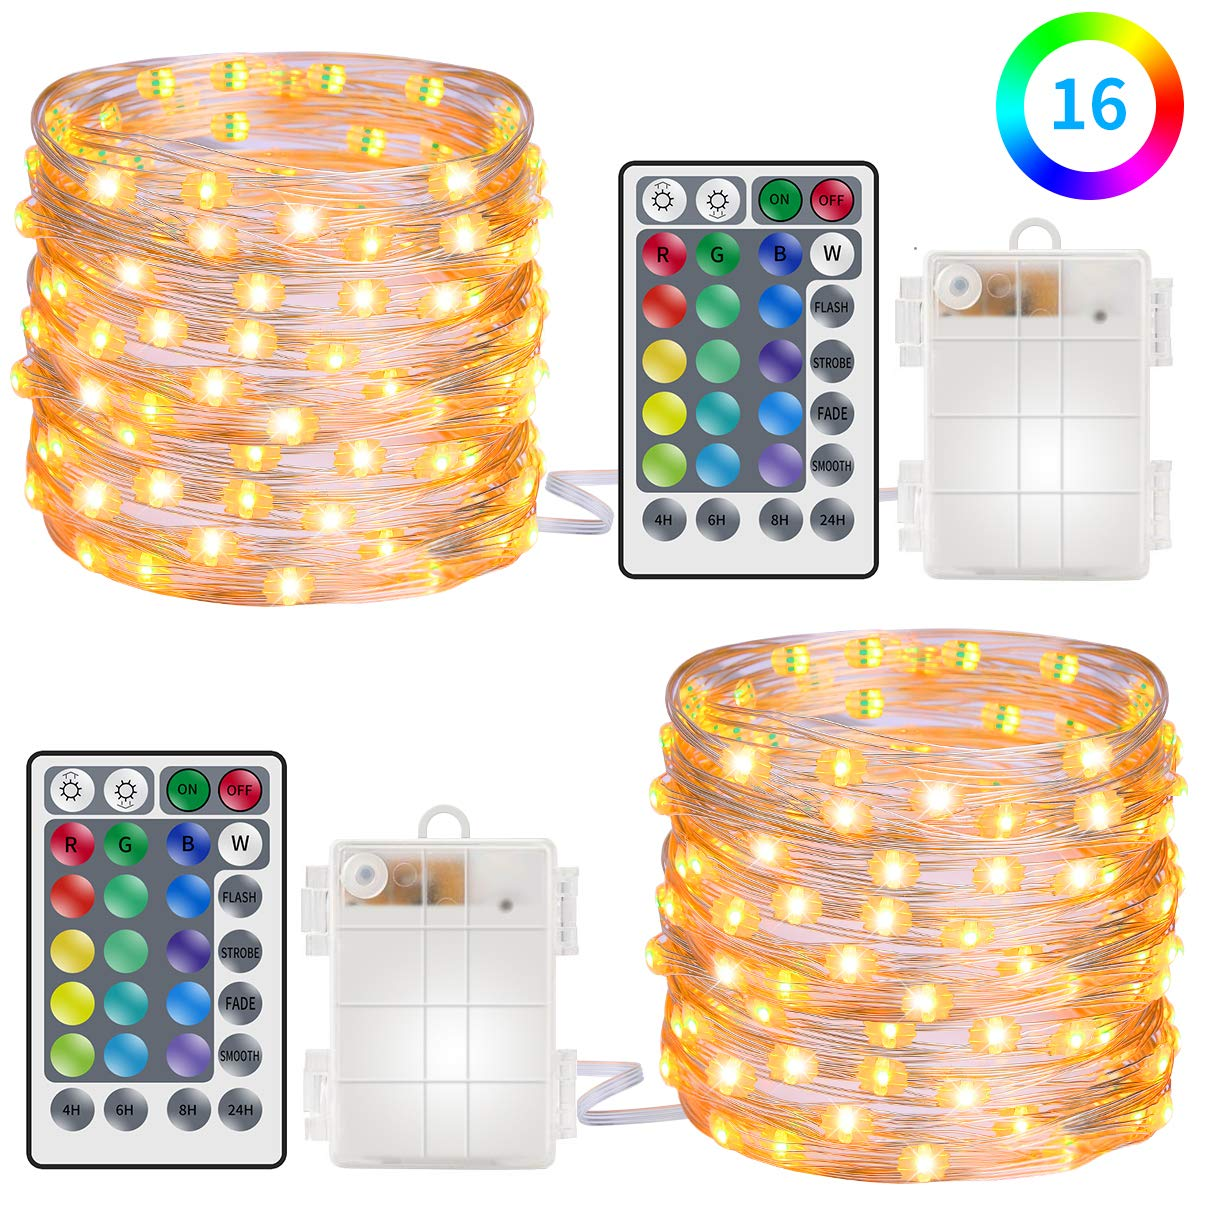 MINGER Govee String Lights 16.4FT 50 LED RGB Multi Color Fairy Lights with Battery Case Remote Control for Indoor and Outdoor Decor 2 Pack